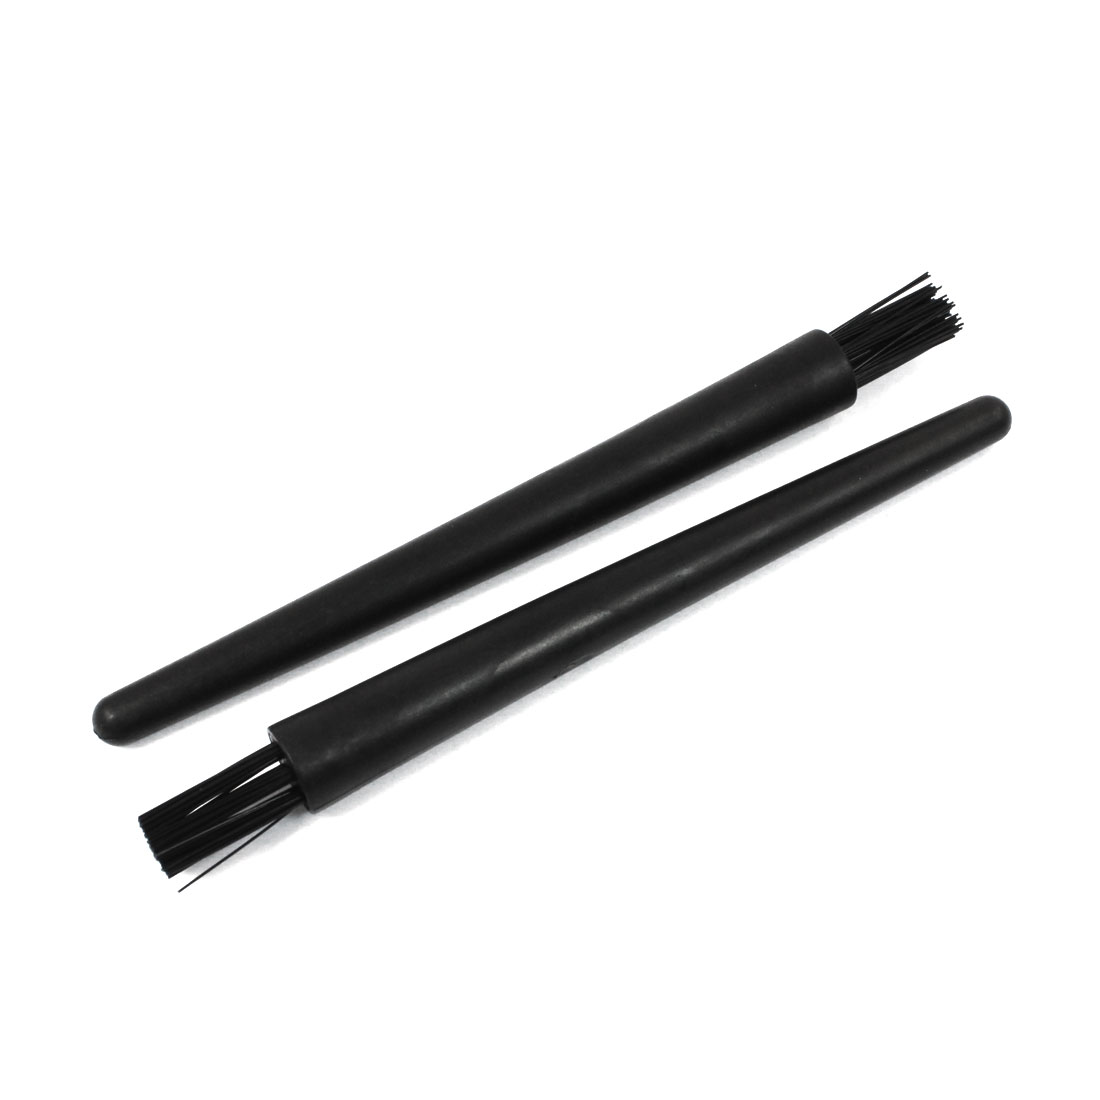 2pcs 18mm x 8mm Black Plastic Round Handle Anti Static ESD Brush